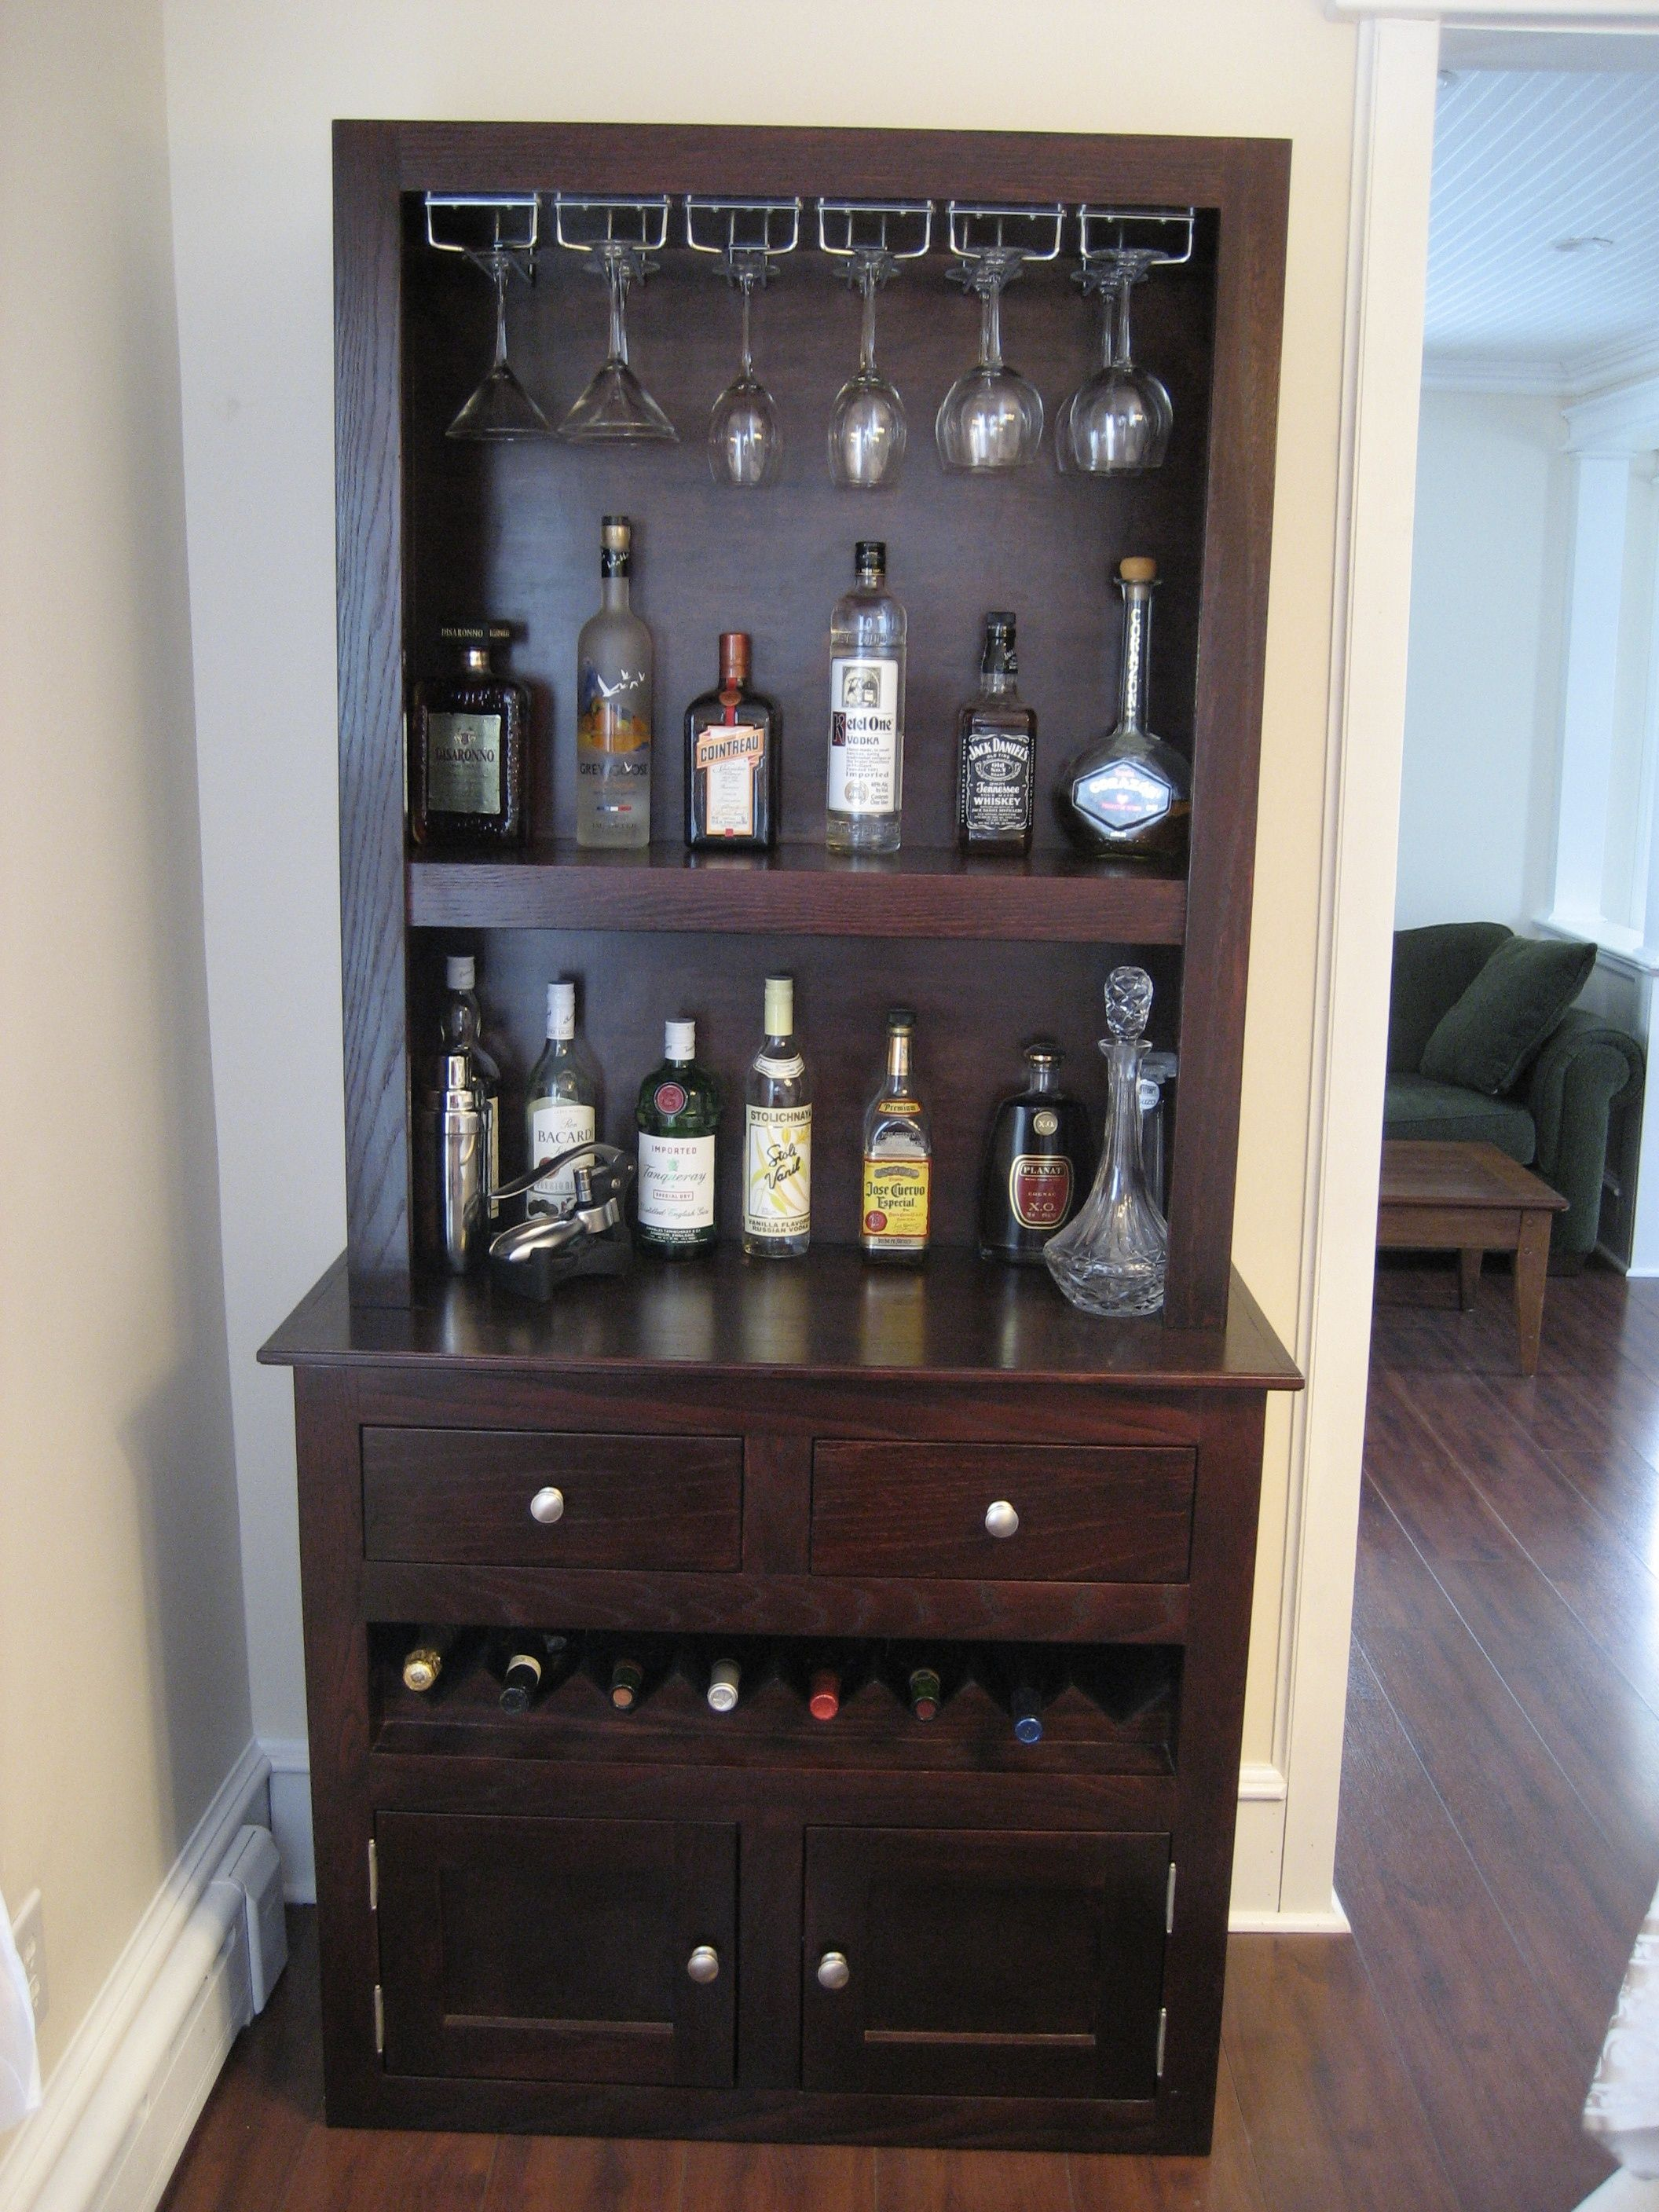 Custom Liquor Cabinet With Glass Racks Open Shelving Integrated Wine Bottle Holder And Closed